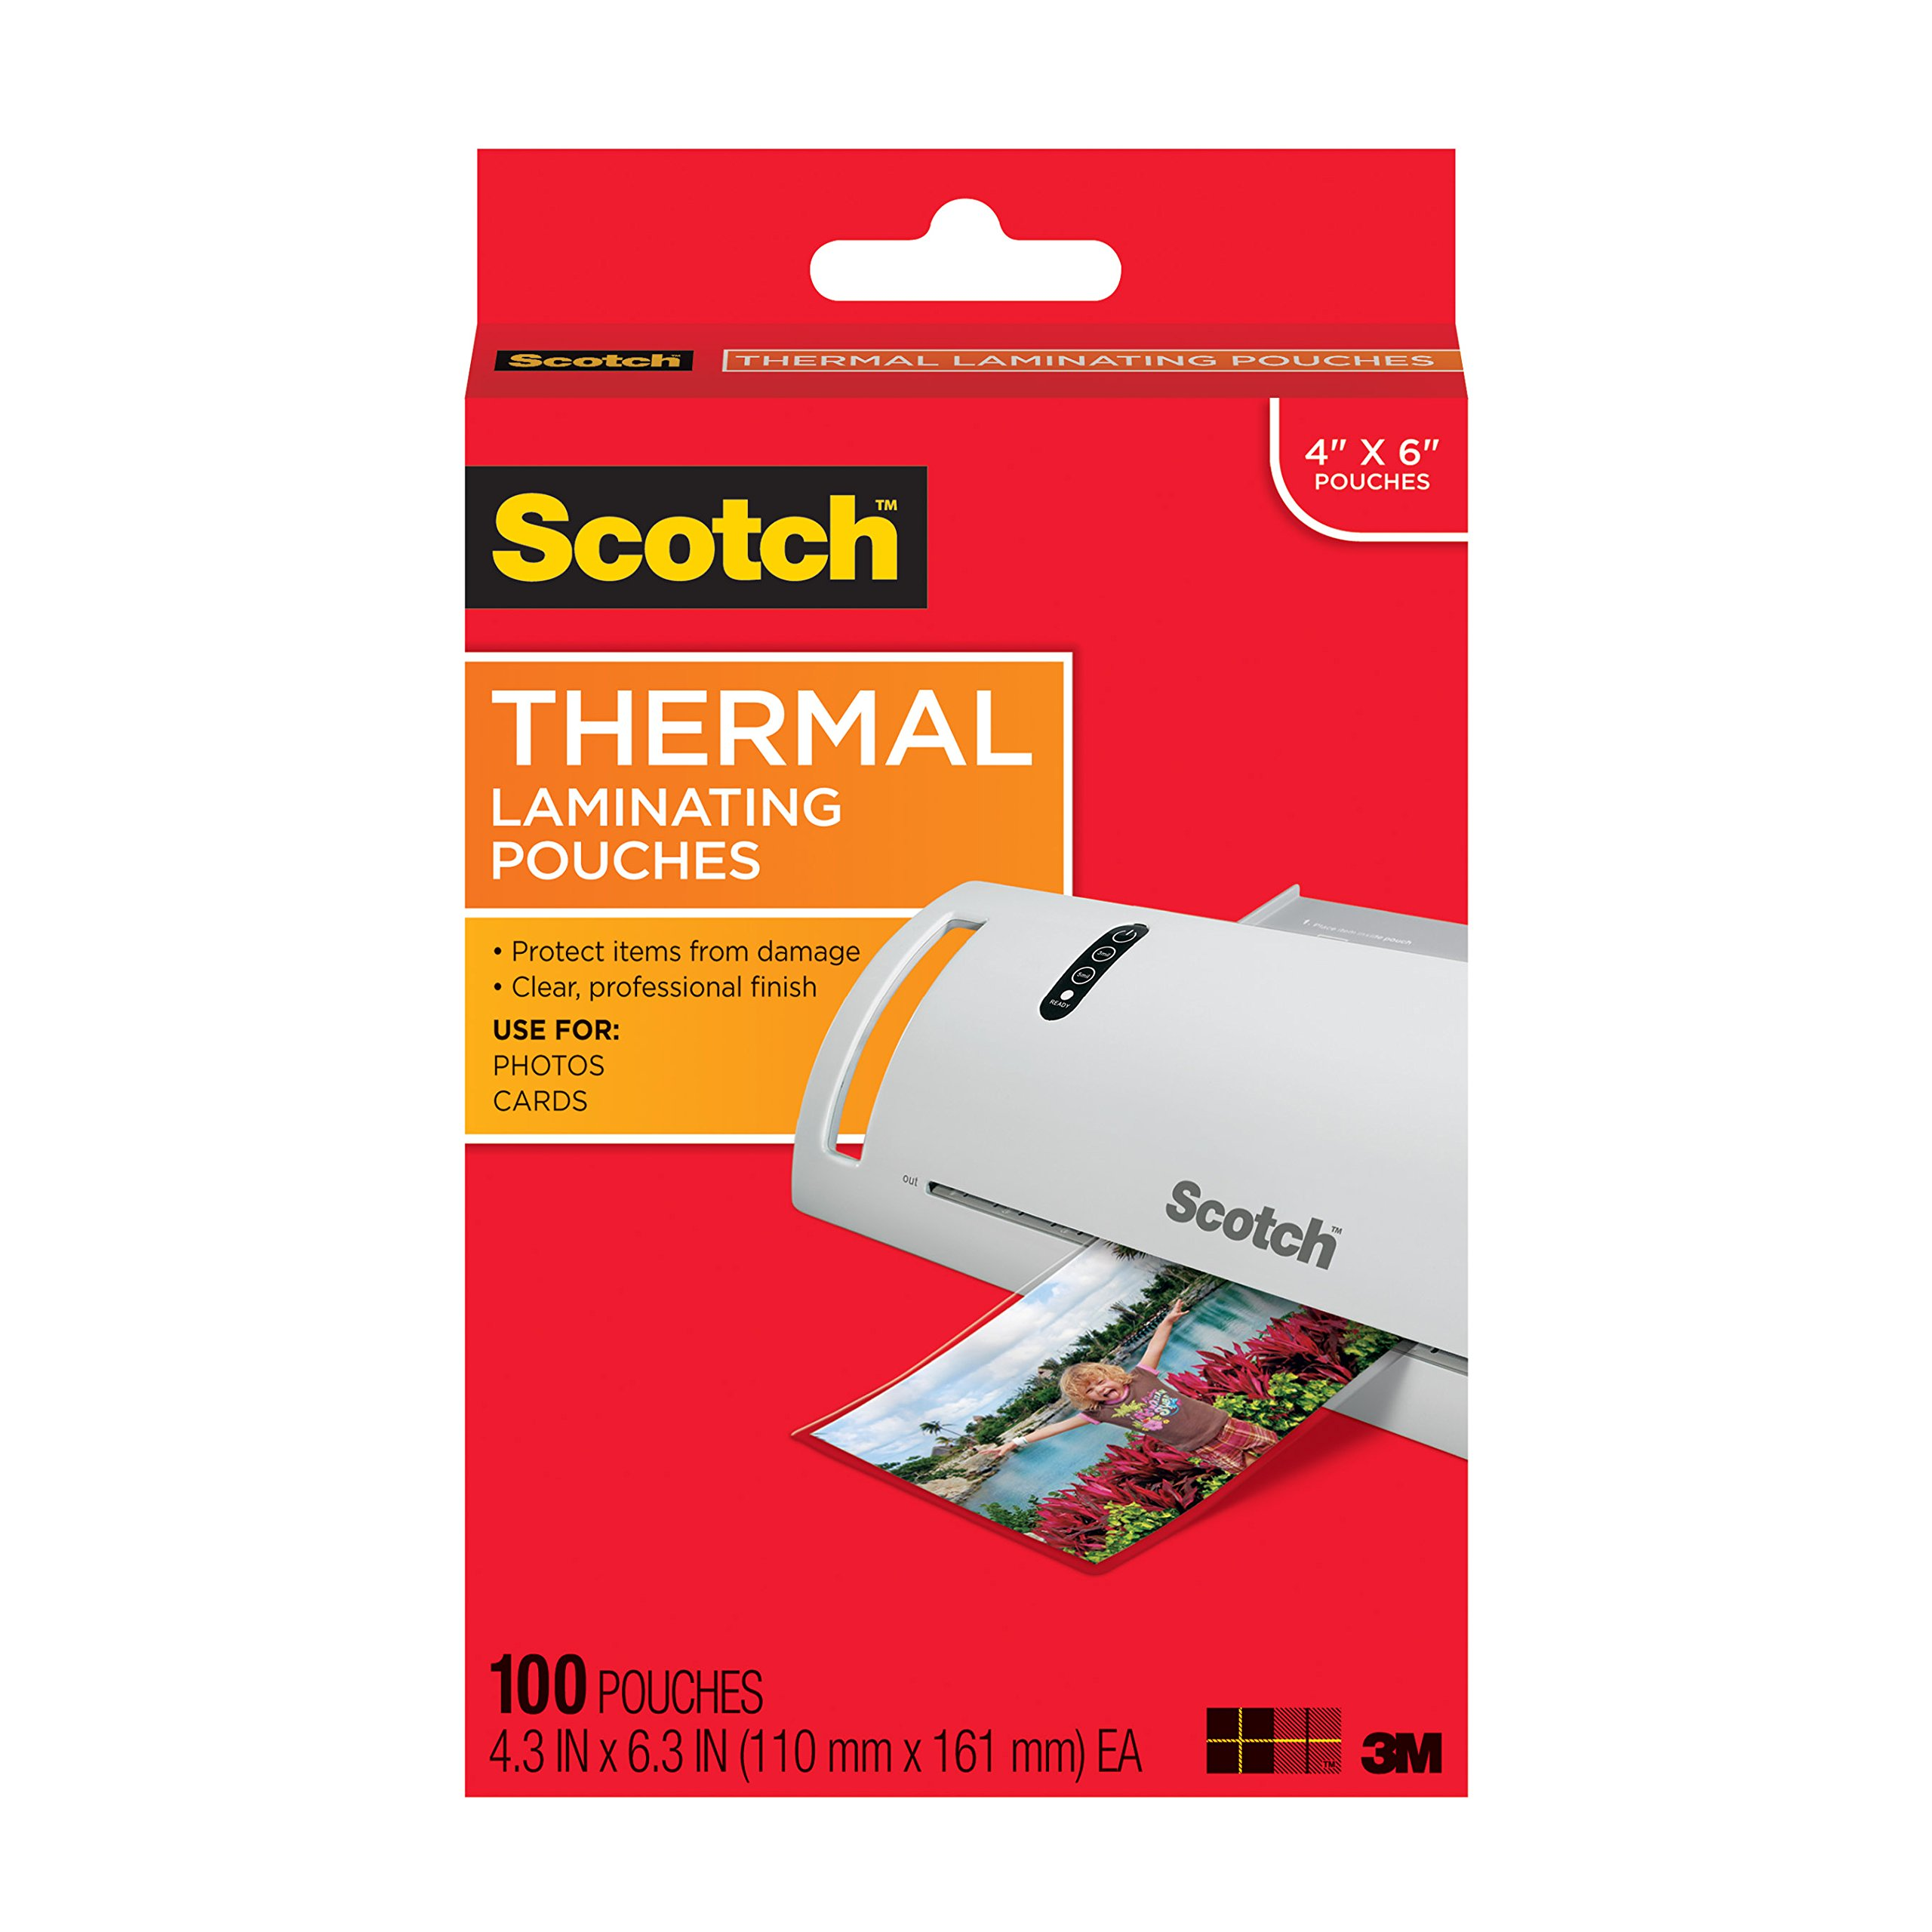 Scotch Thermal Laminating Pouches, 4.3 Inches x 6.3 Inches, 100 Pouches (TP5900-100)